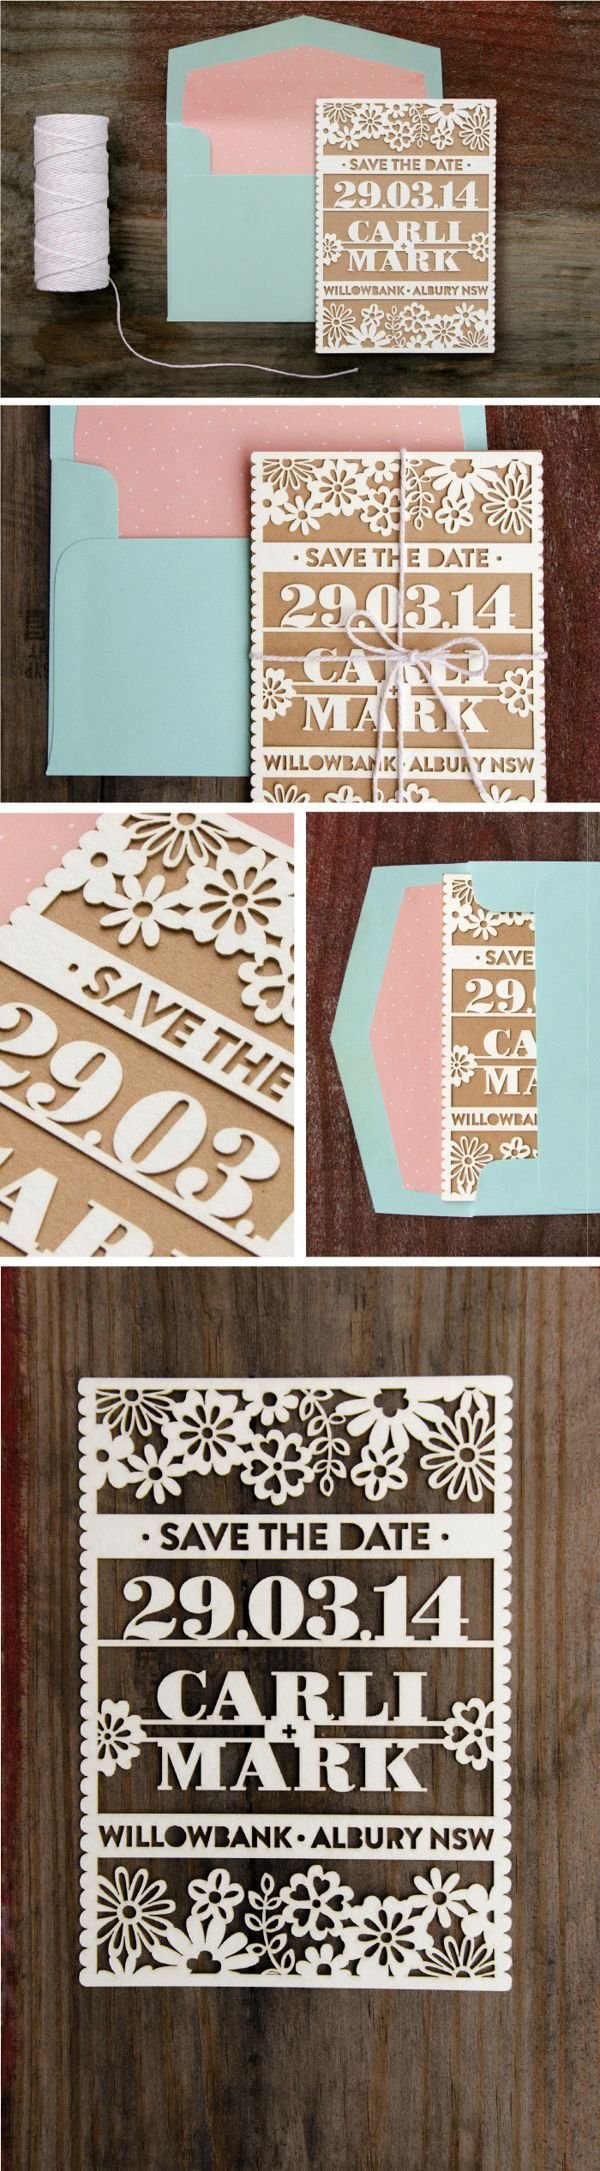 Unique Save the Dates Your Guests Will Love - Wedding Party